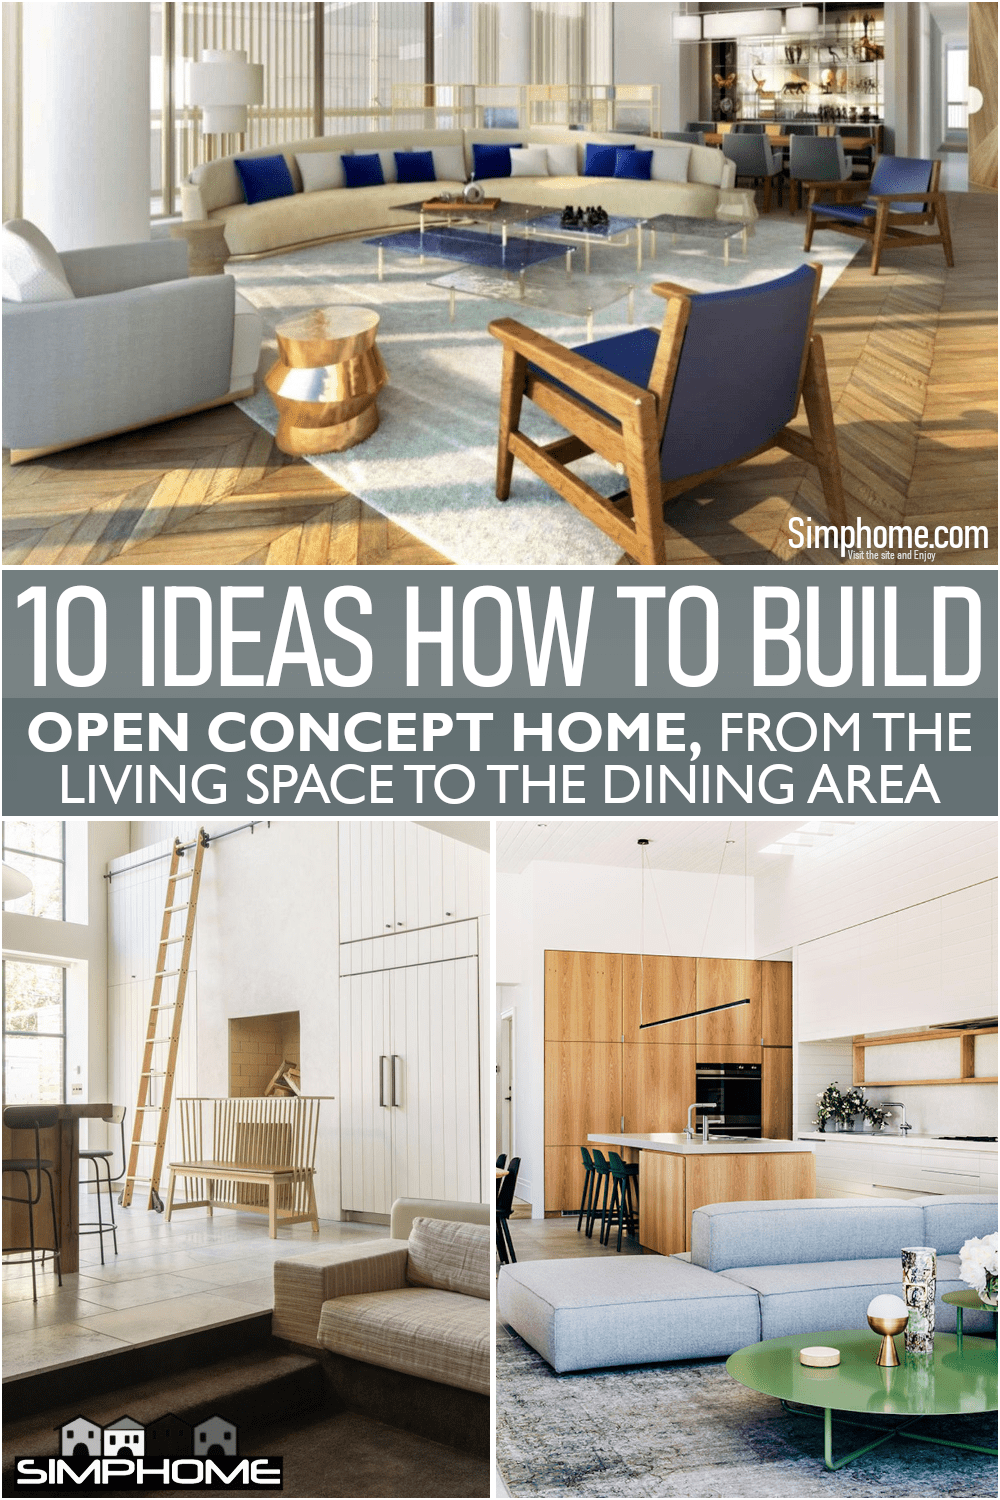 10 Ideas on How to Build Open Concept Homes via Simphome.comFeatured